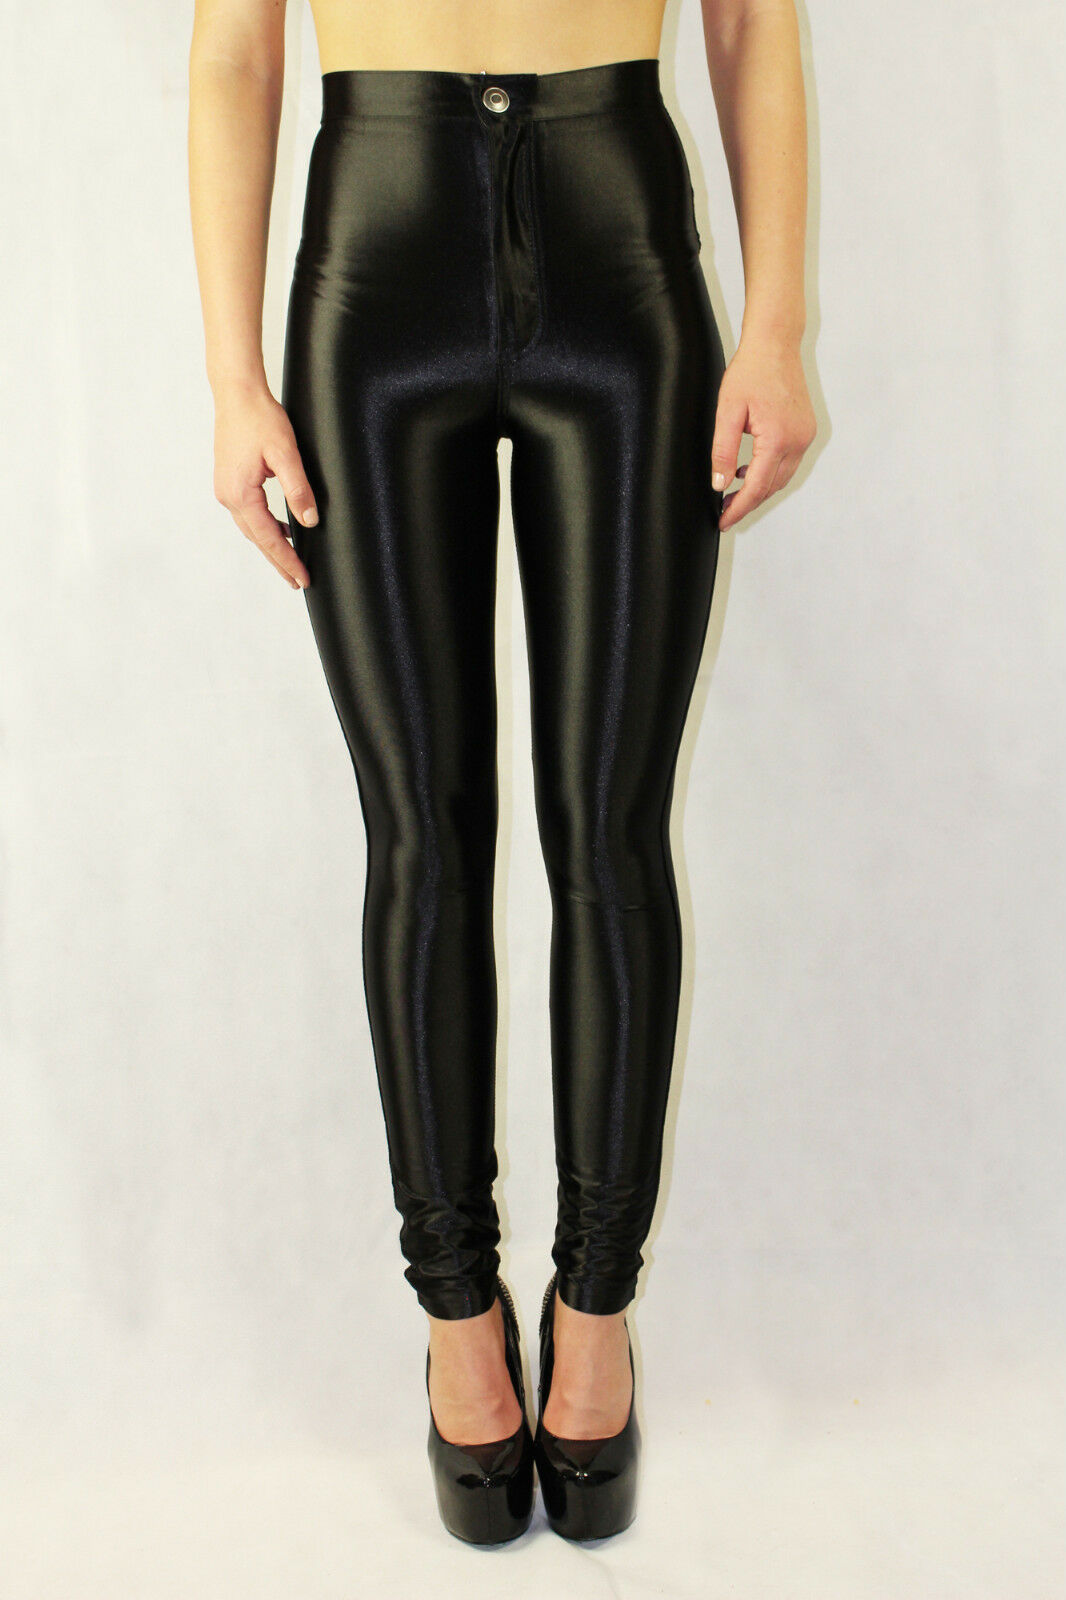 Vintage 70s 80s disco pants by Frederick's of Hollywood made of shiny black nylon/spandex. High waisted with a straight skinny leg. Every item we sell is authentic vintage and one-of-a-kind!/5(K).